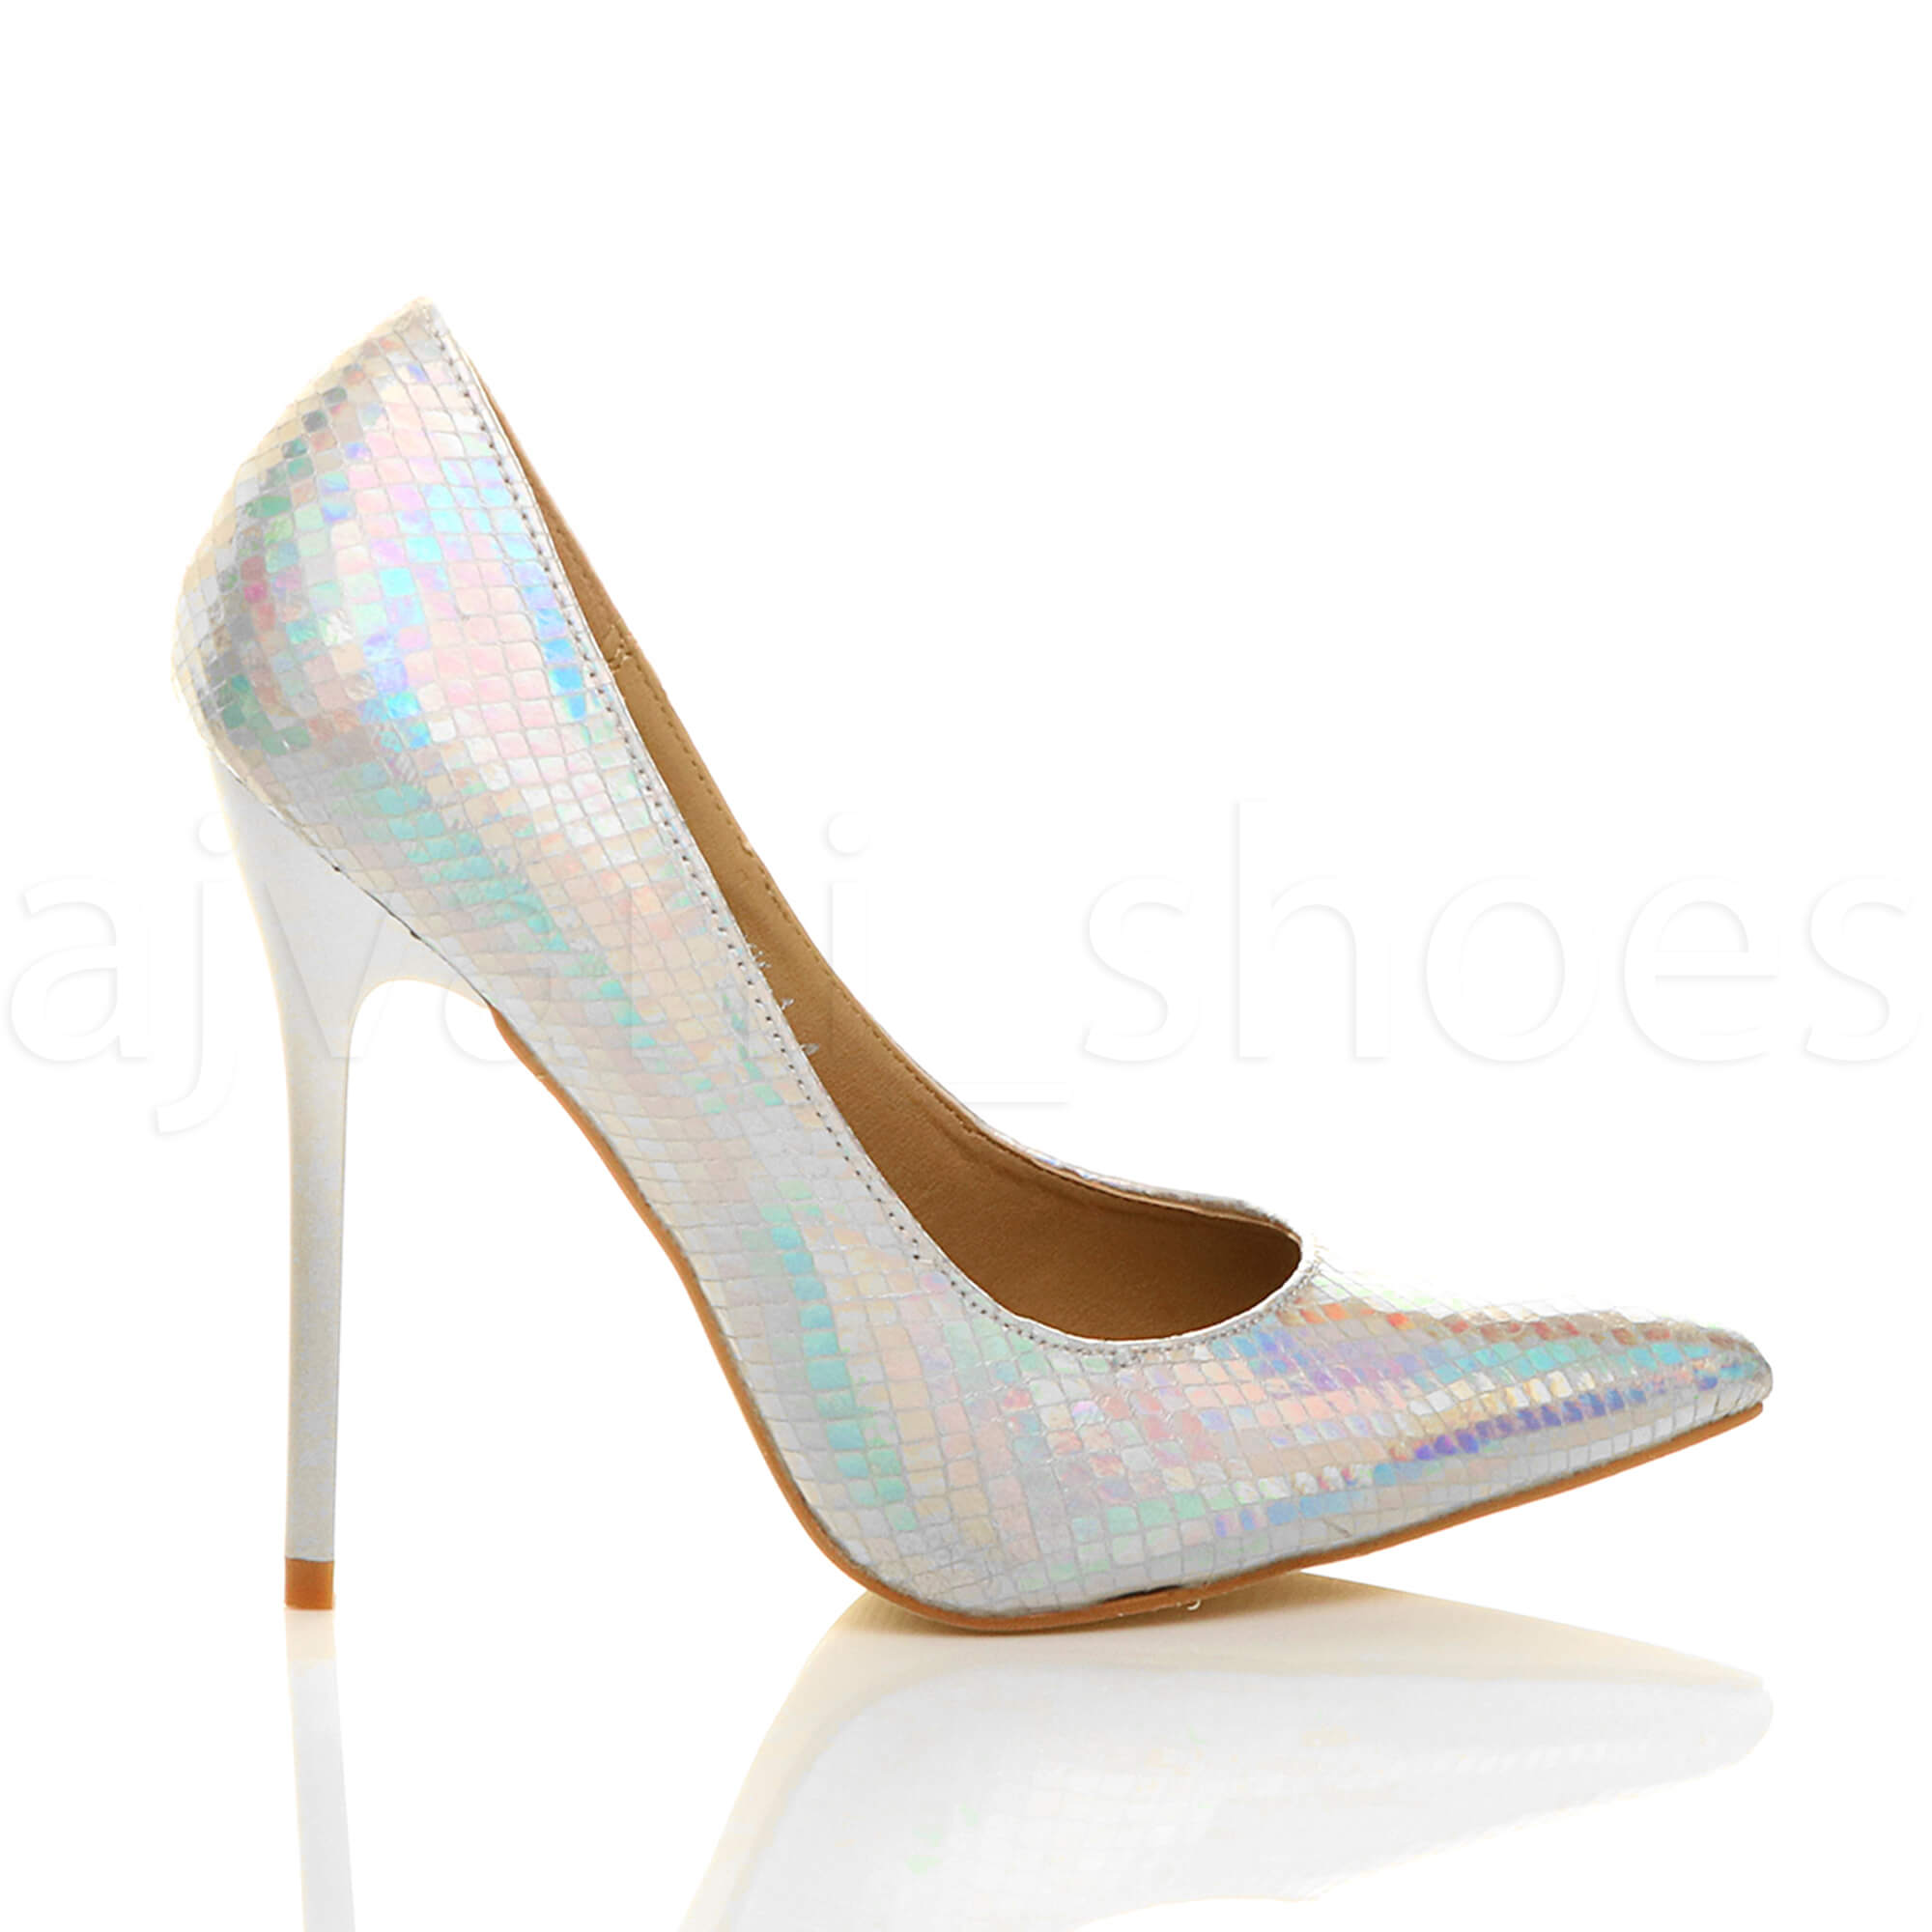 WOMENS-LADIES-HIGH-HEEL-POINTED-CONTRAST-COURT-SMART-PARTY-WORK-SHOES-PUMPS-SIZE thumbnail 185